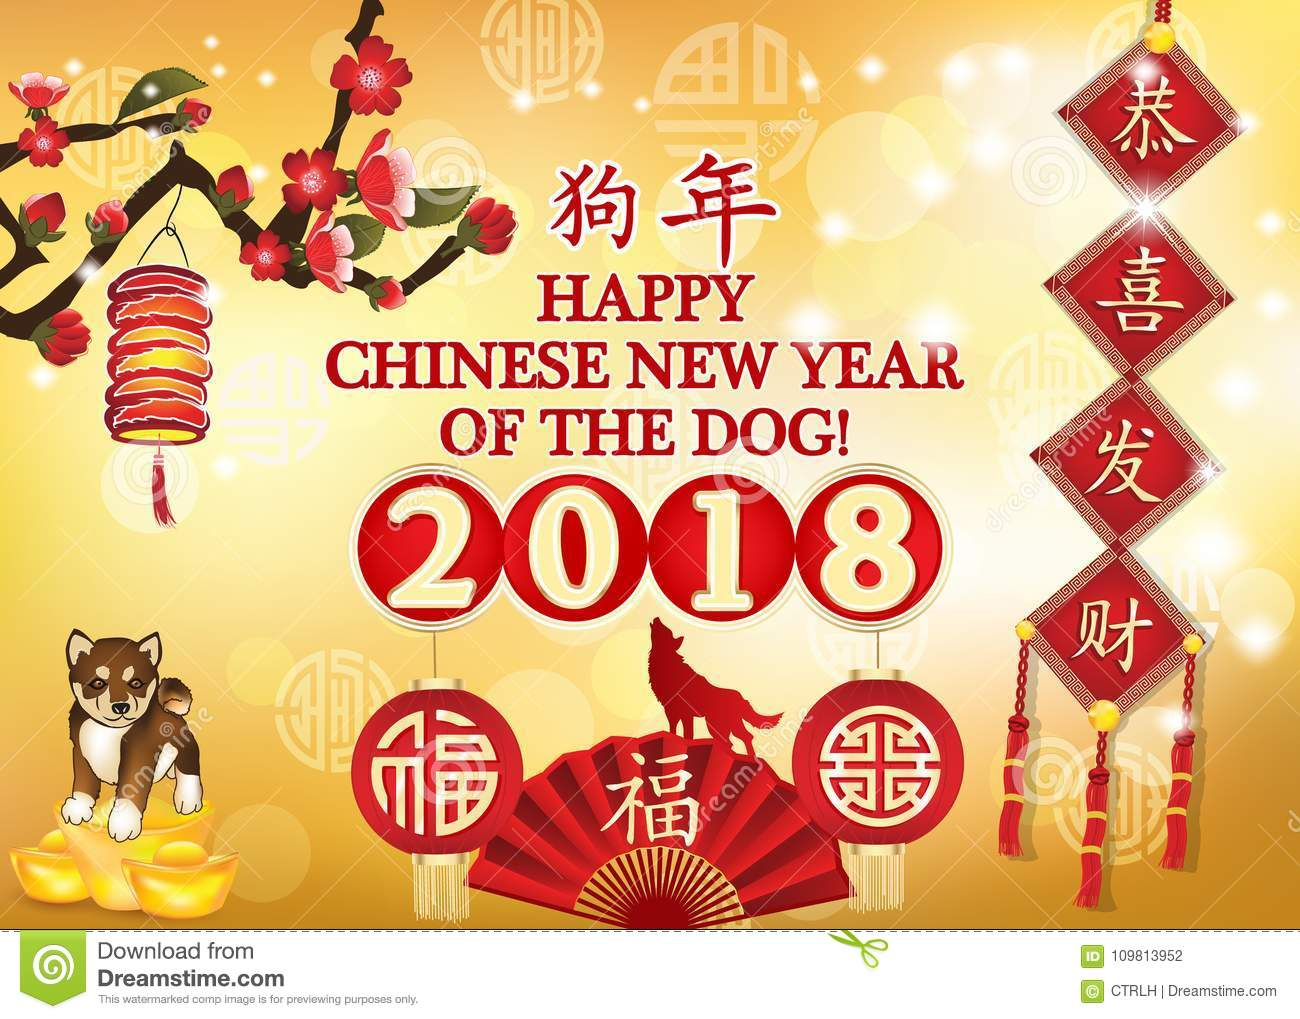 Happy Chinese New Year Of The Dog 2018 Greeting Card For Print